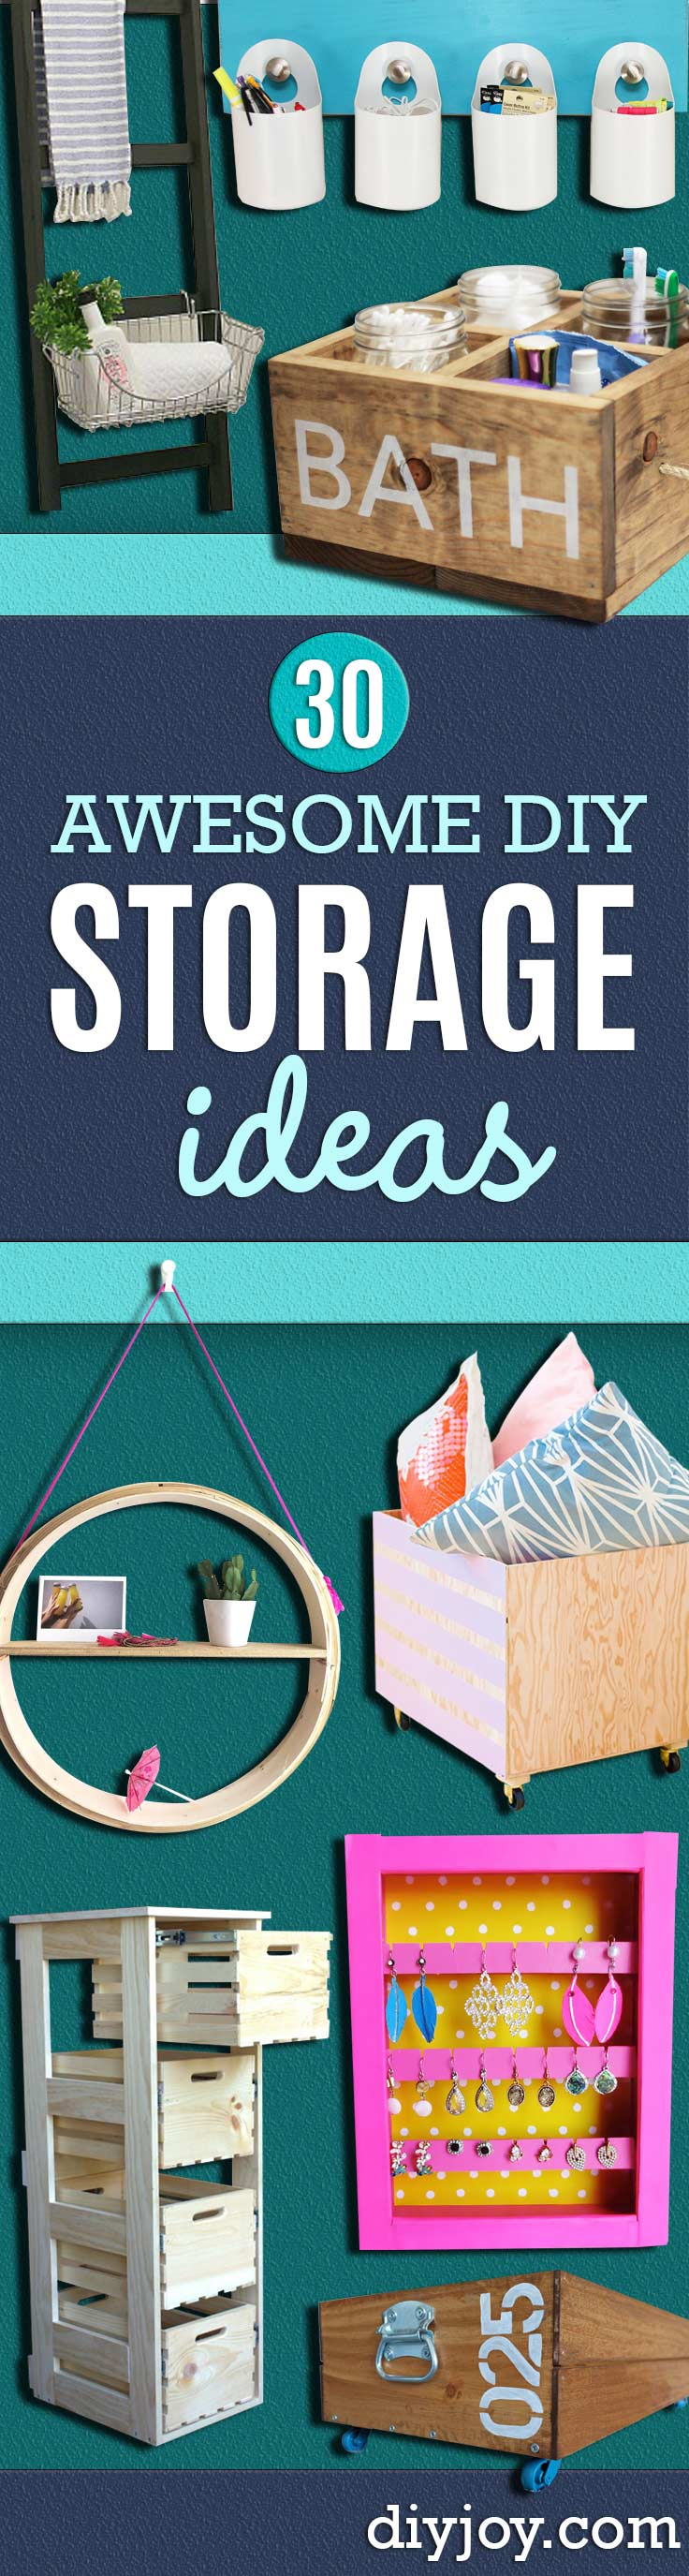 Storage ideas home decor and organizing projects for the bedroom diy storage ideas home decor and organizing projects for the bedroom bathroom living room panty and storage solutioingenieria Gallery